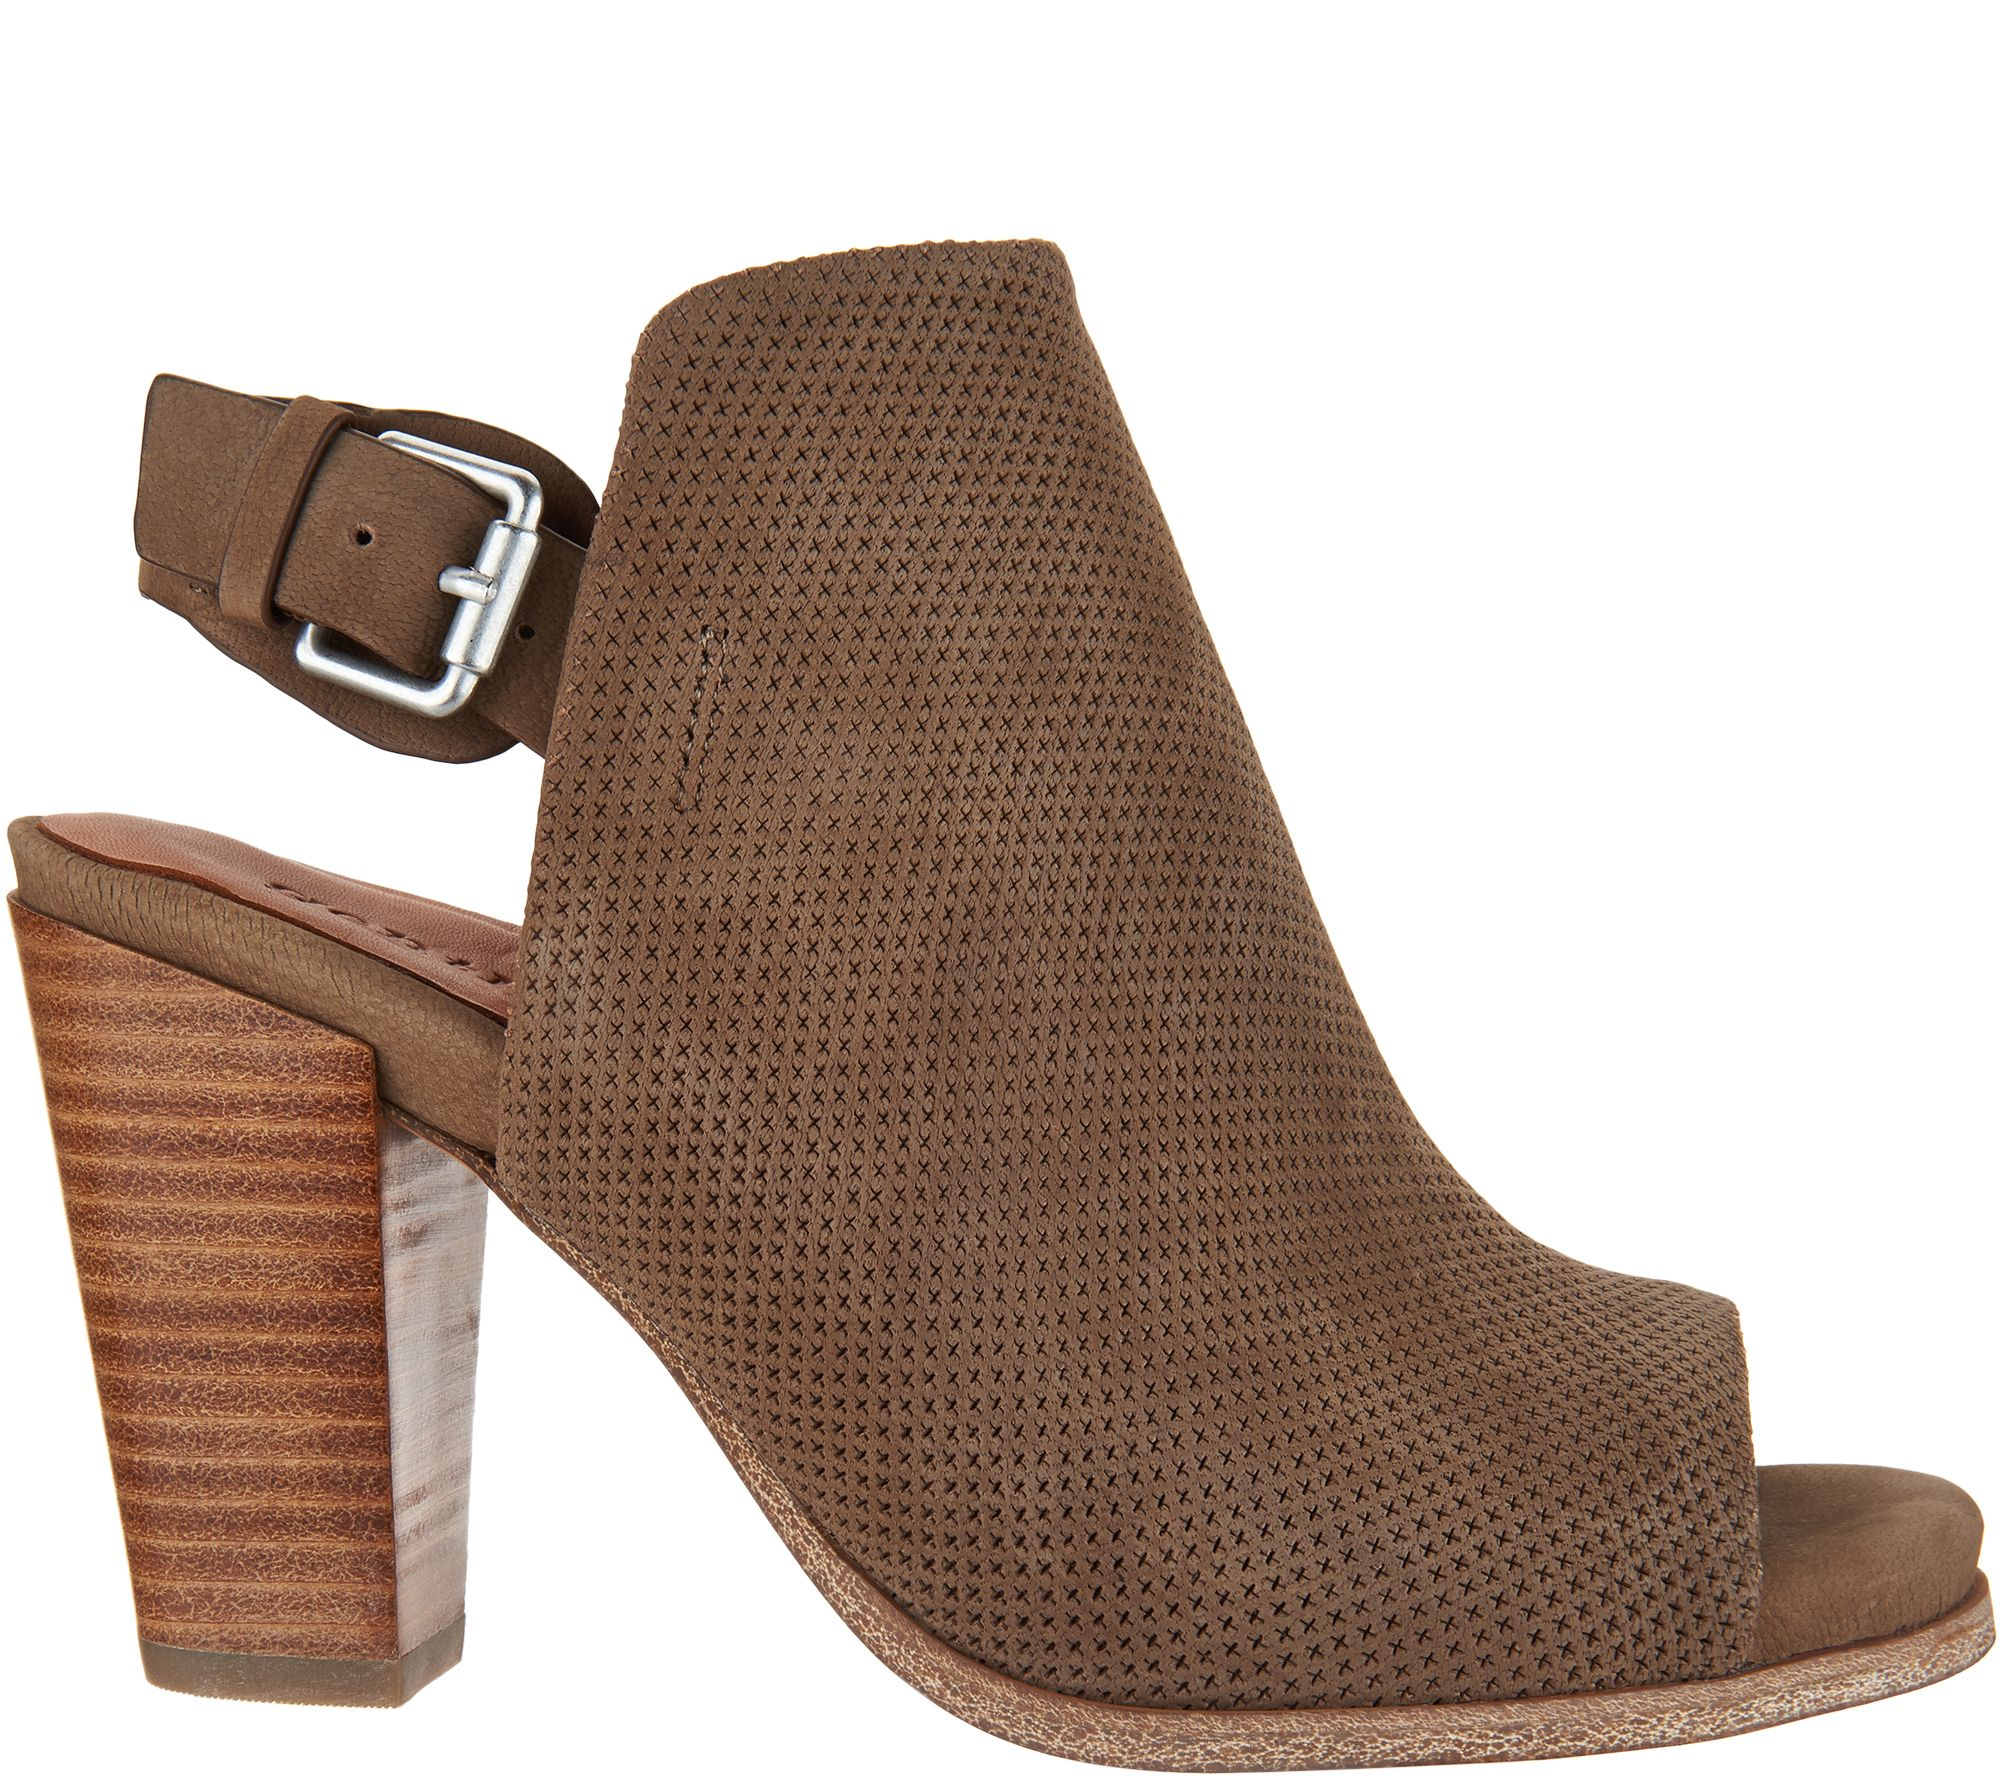 Gentle Souls Leather Block Heel Sandals - Shiloh with mastercard sale online big sale buy cheap reliable ZVRsmvOtx2